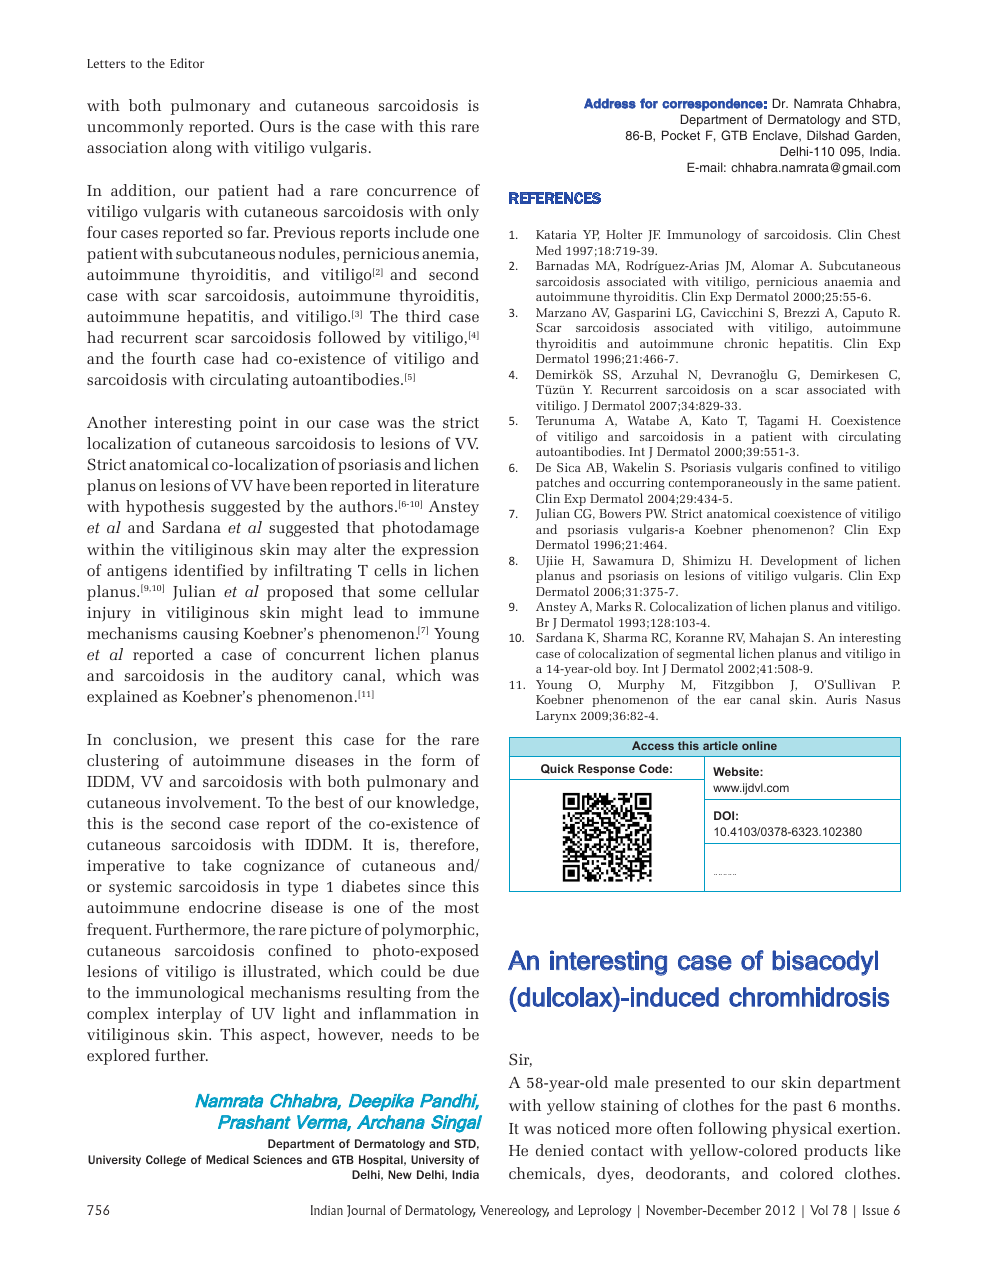 An interesting case of bisacodyl (dulcolax)-induced chromhidrosis